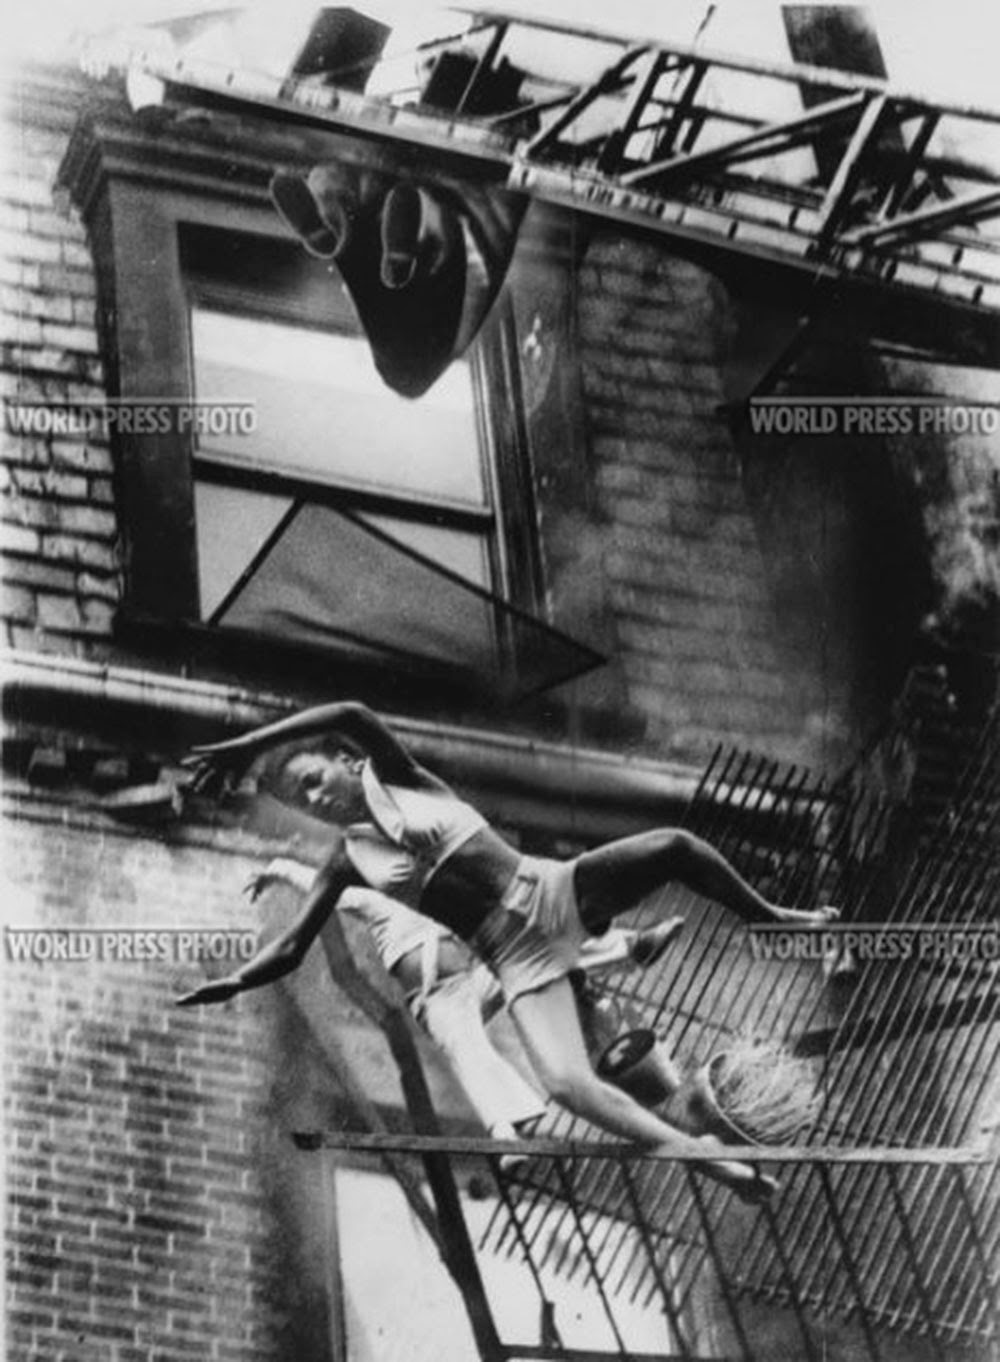 a_mother_and_her_daughter_falling_from_a_fire_escape_1975_4.jpg